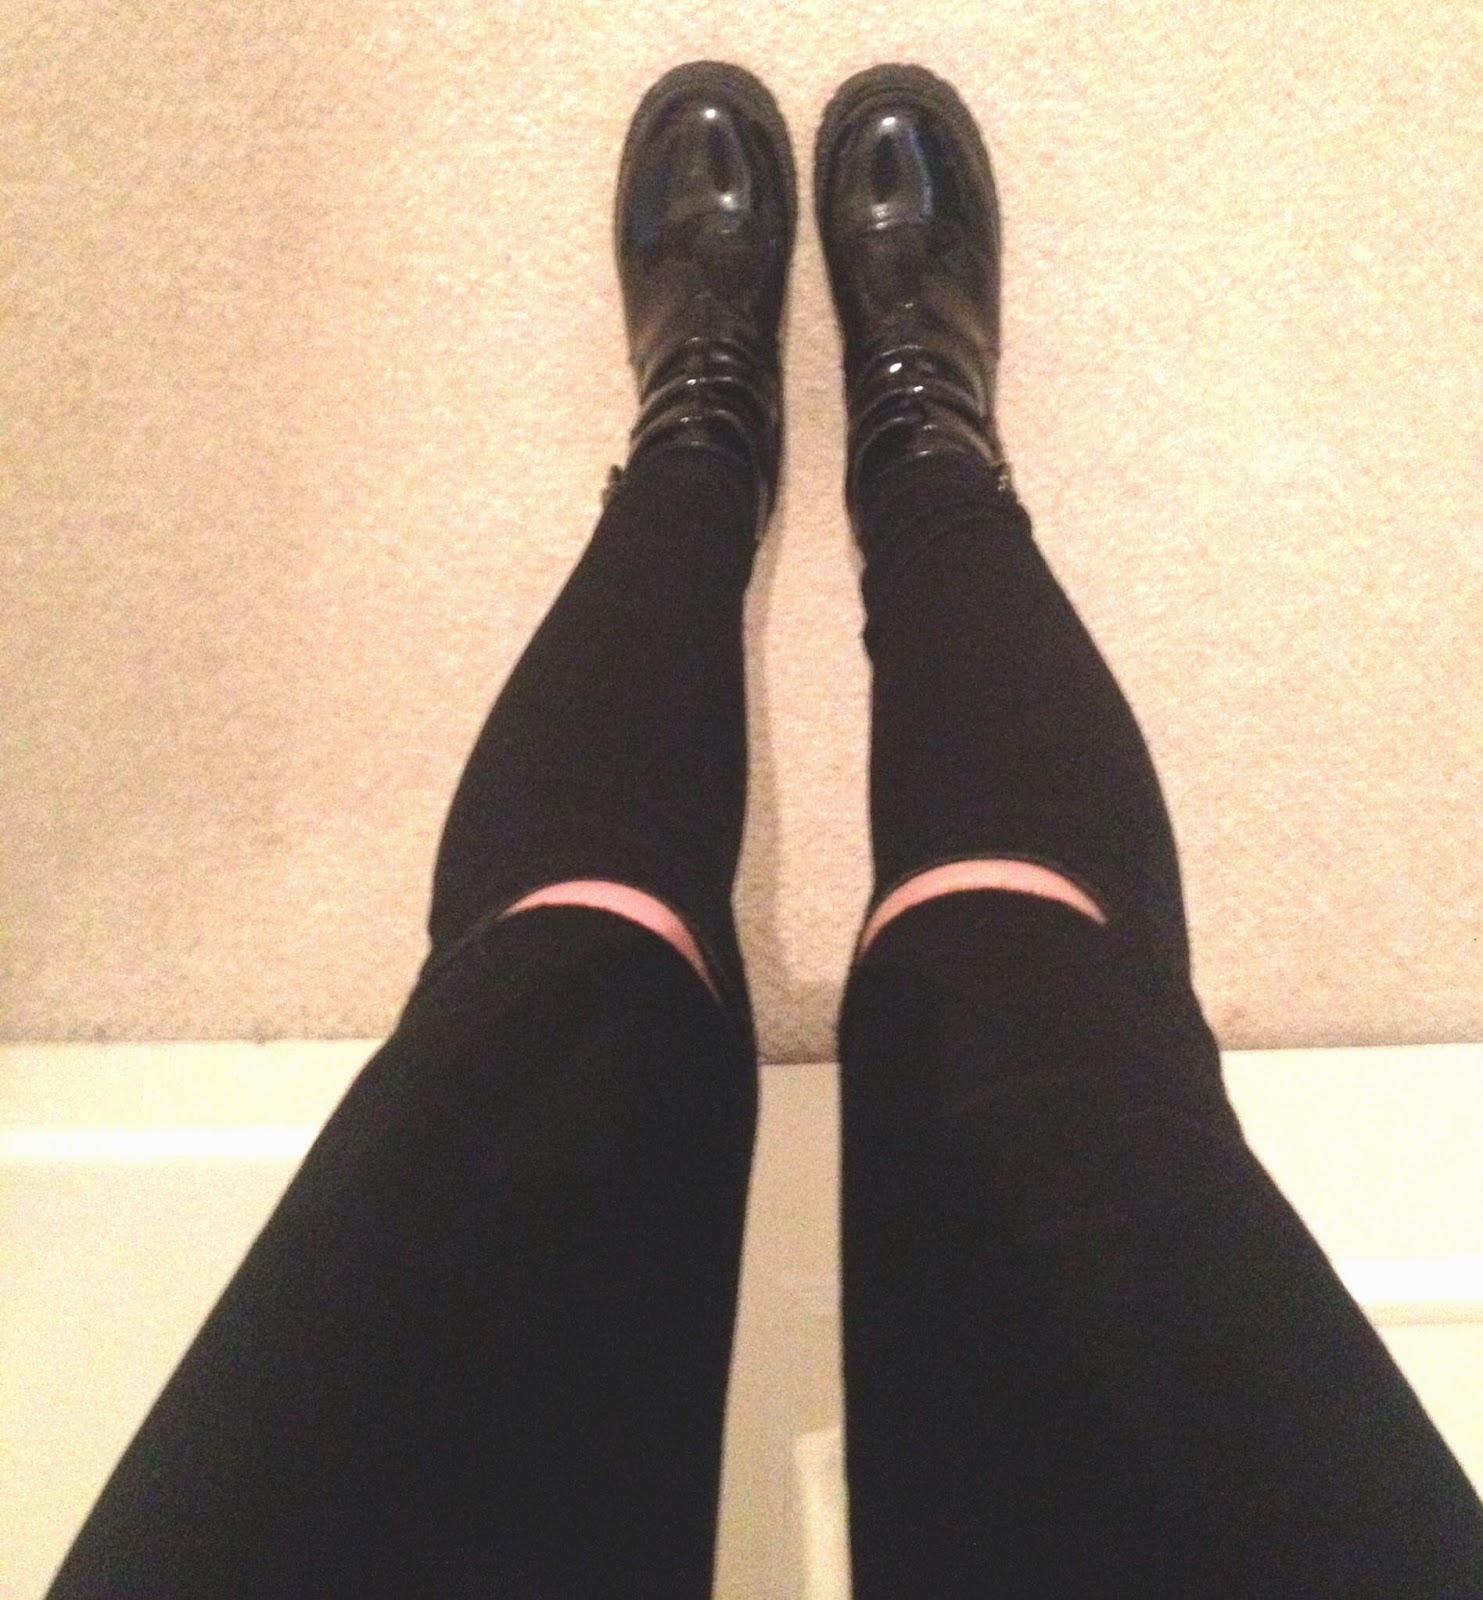 ribbed black jeans and chunky boots from above